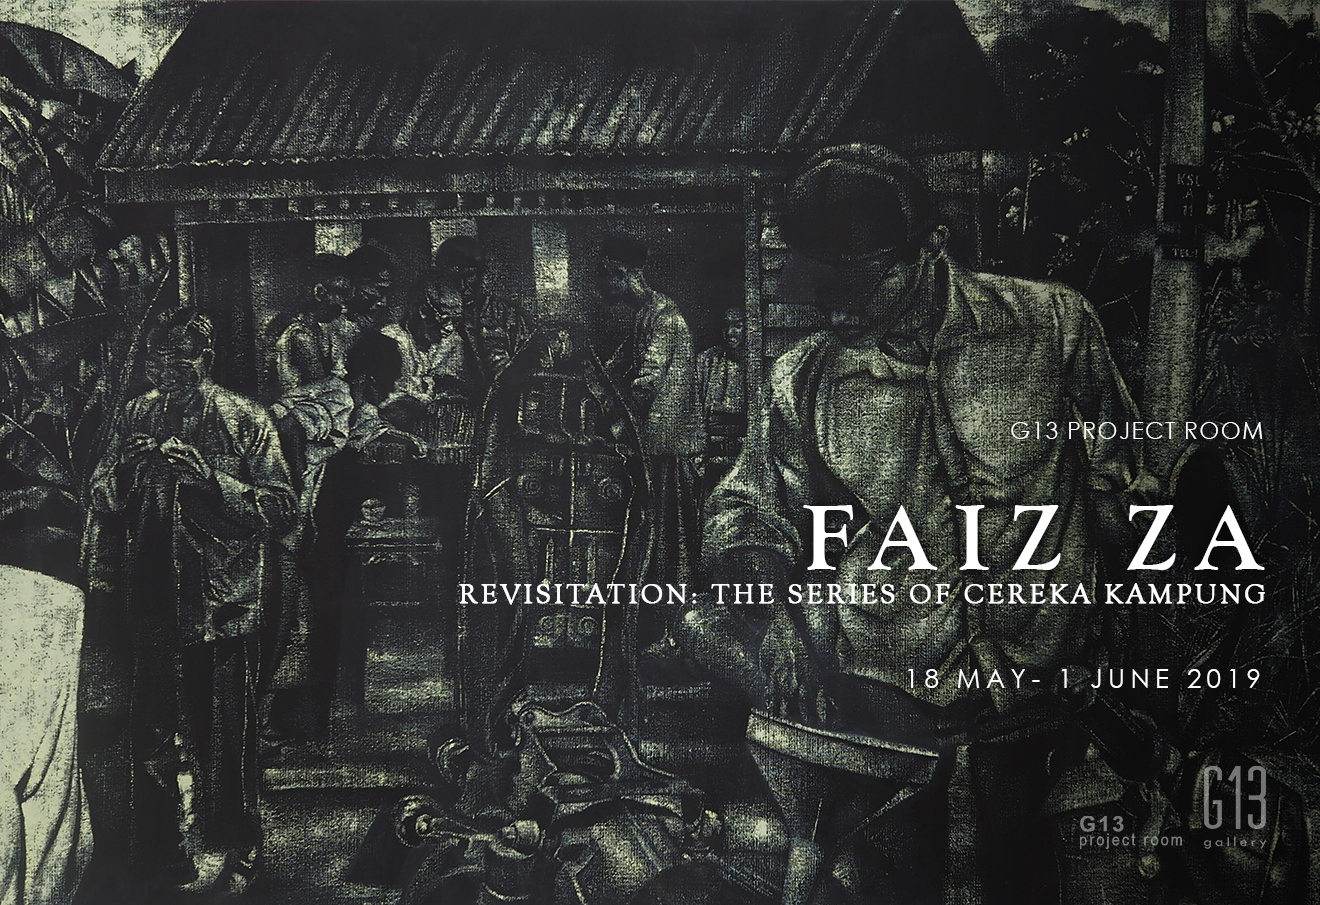 G13 Project Room: 'Revisitation: The series of Cereka Kampung' by Faiz ZA